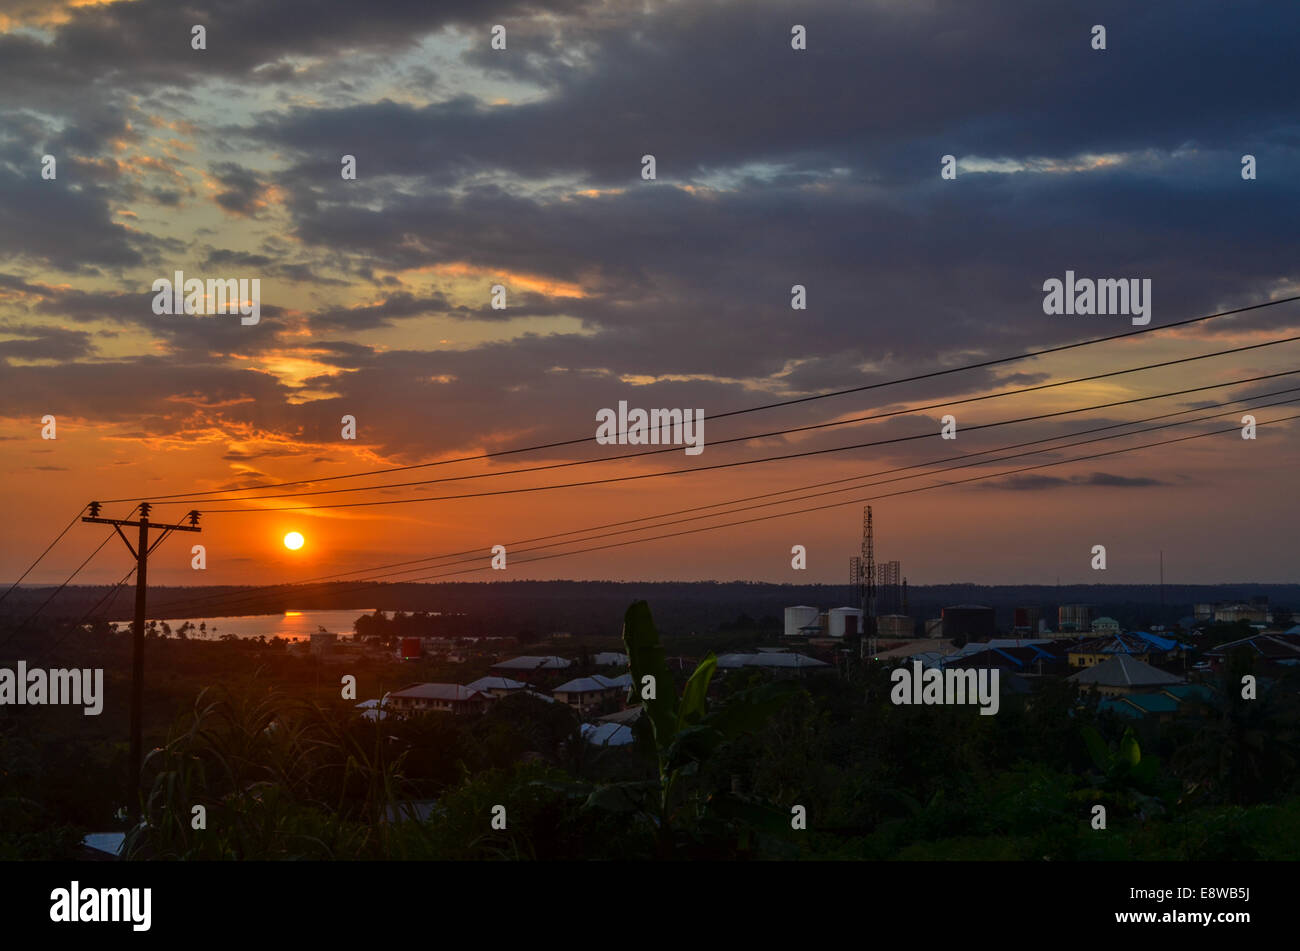 Sunset over Cross River (where the oil pipelines run) and the city of Calabar, Nigeria - Stock Image